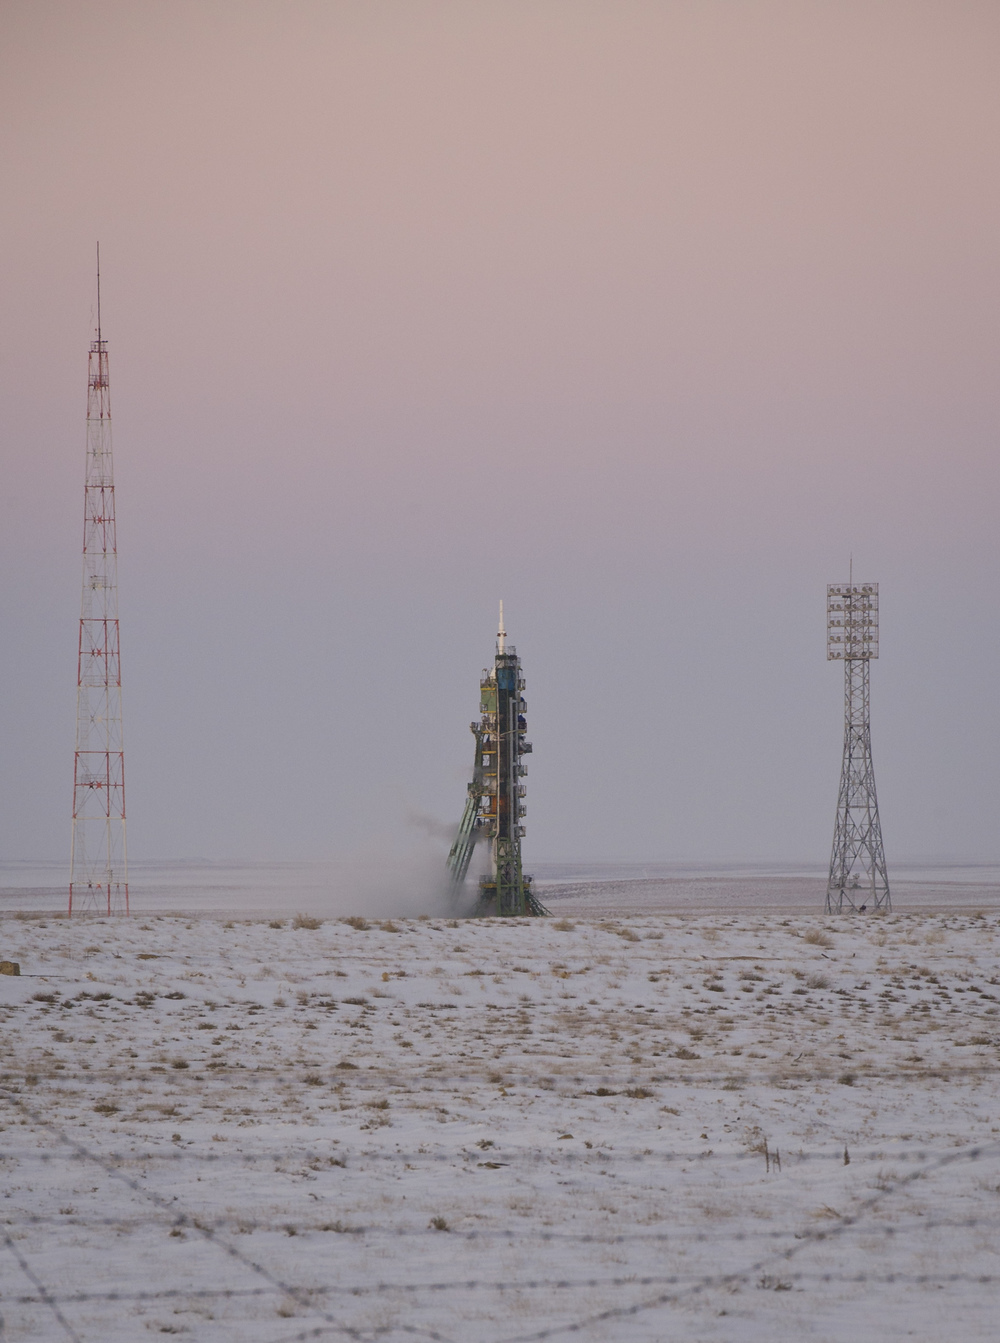 The Soyuz TMA-03M spacecraft is seen at dusk an hour before launch at the Baikonur Cosmodrome in Kazakhstan, Wednesday, Dec. 21, 2011. The crew of Expedition 30, NASA Flight Engineer Don Pettit, Soyuz Commander Oleg Konenko, ESA (European Space Agency) Andre Kuipers launched at 7:16pm local time to the International Space Station. (NASA/Carla Cioffi)